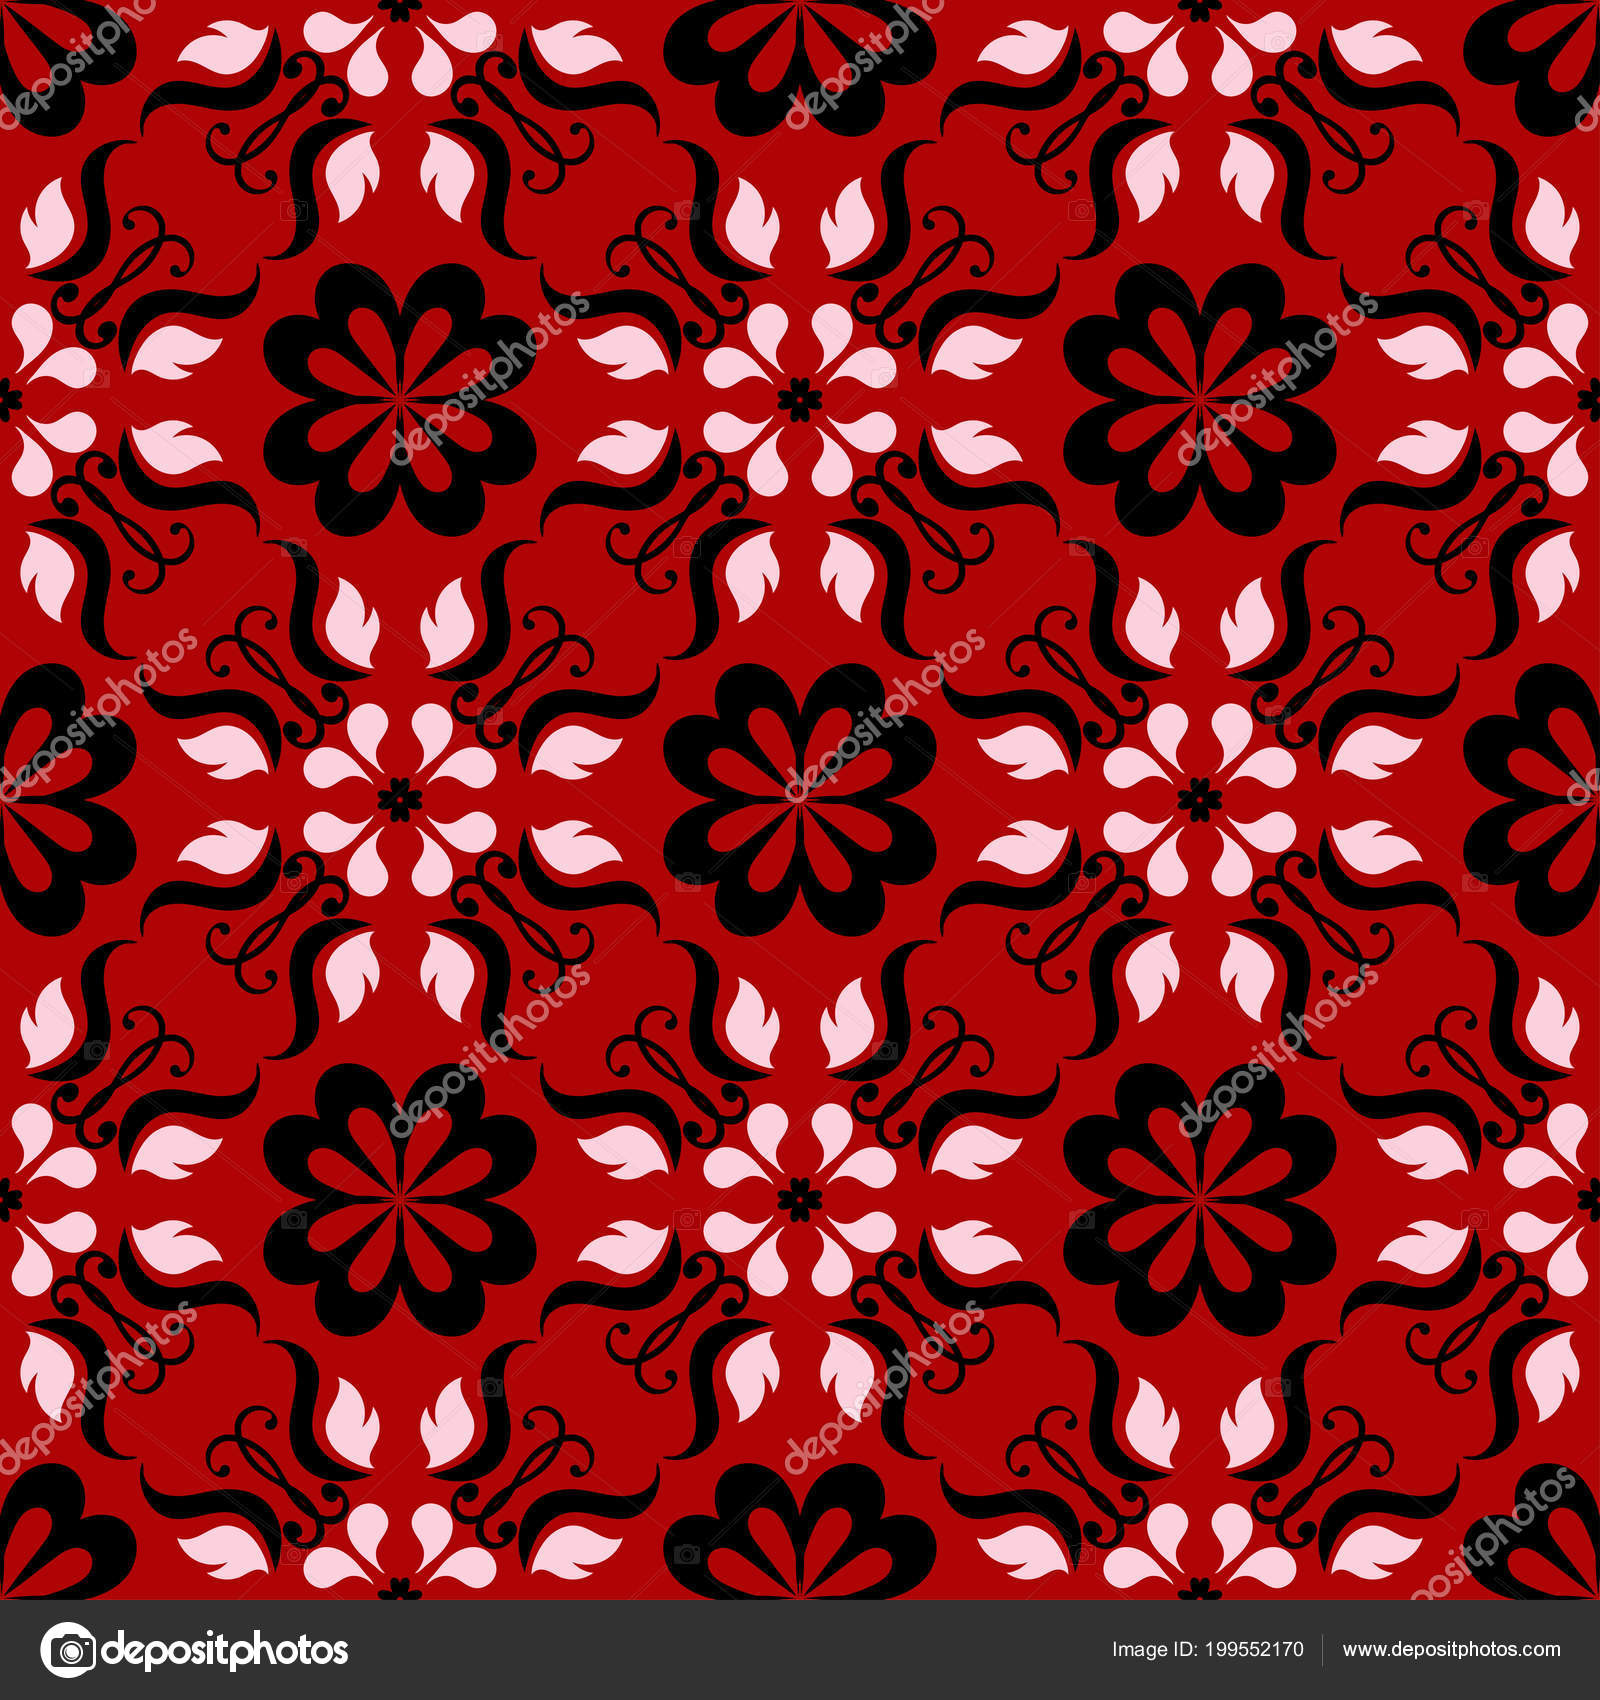 Background Black And White Design Wallpaper Red Seamless